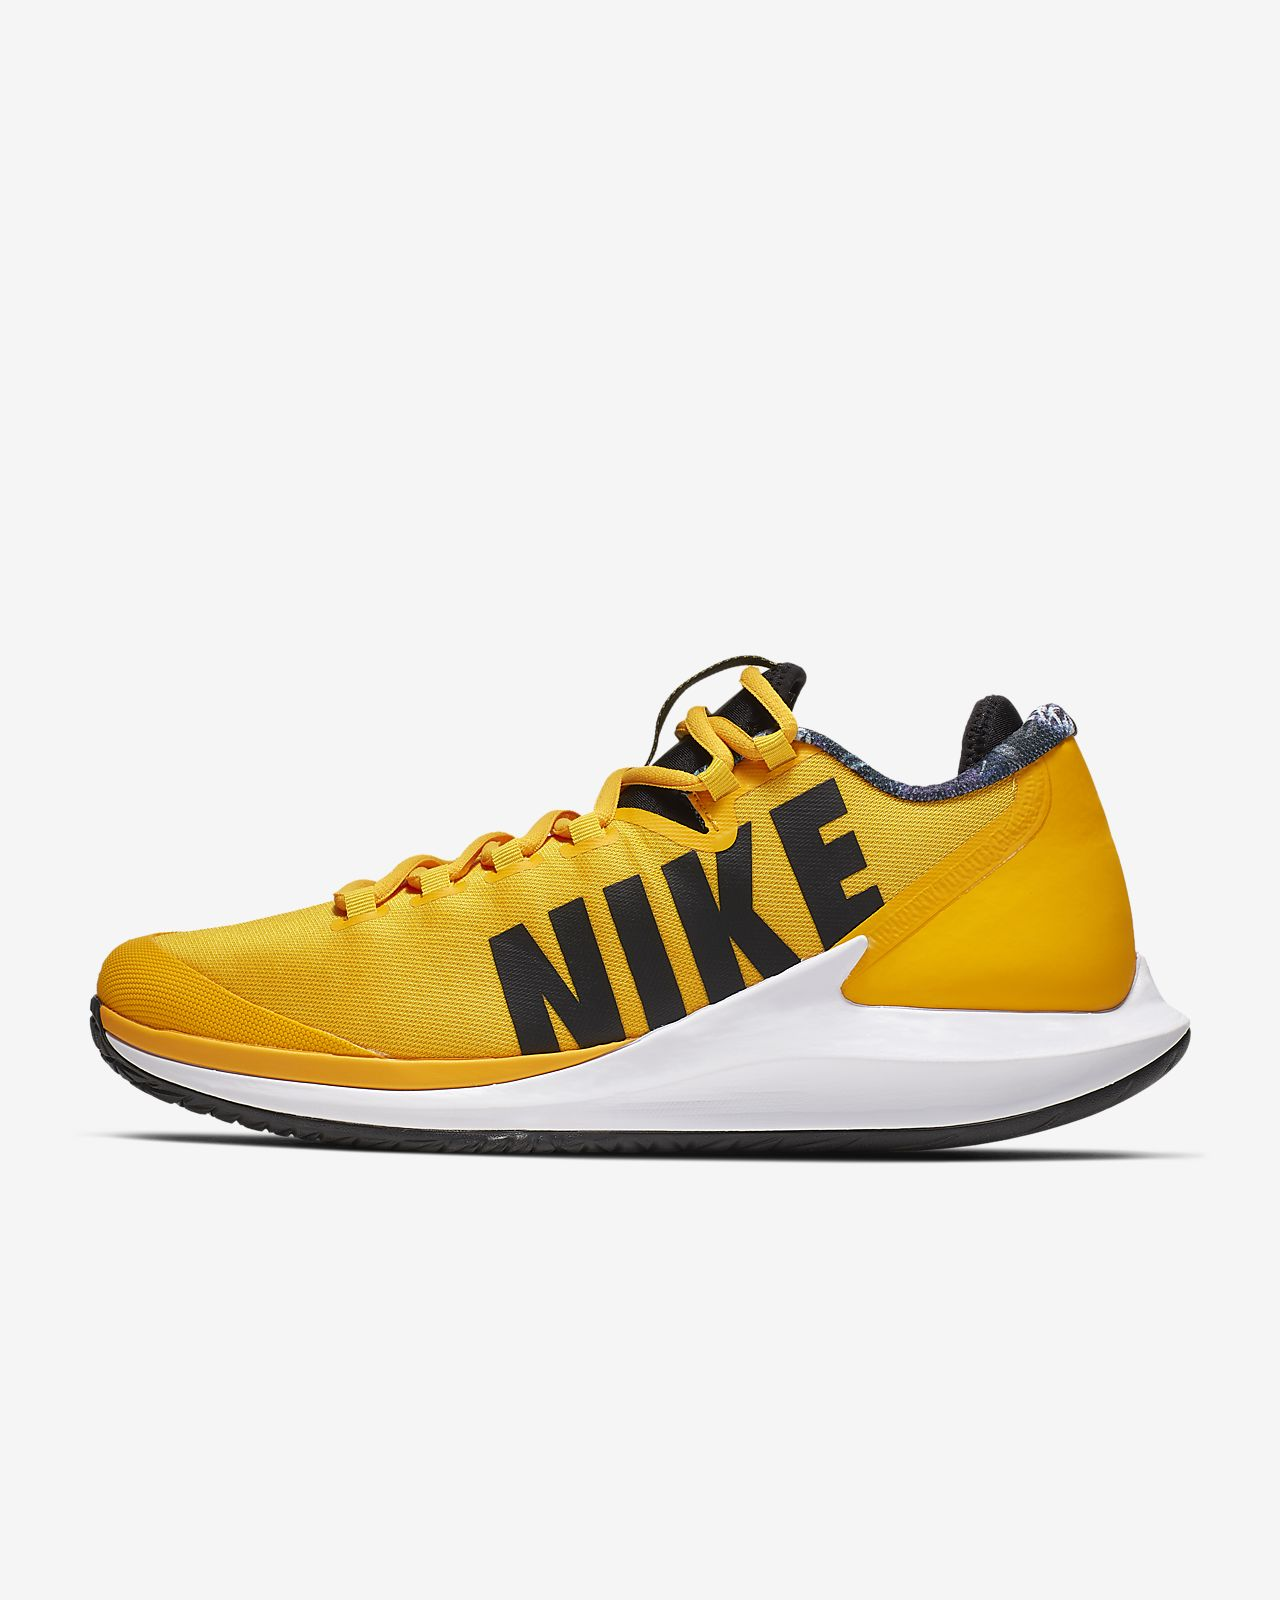 b5cc59311e NikeCourt Air Zoom Zero Men's Tennis Shoe. Nike.com GB